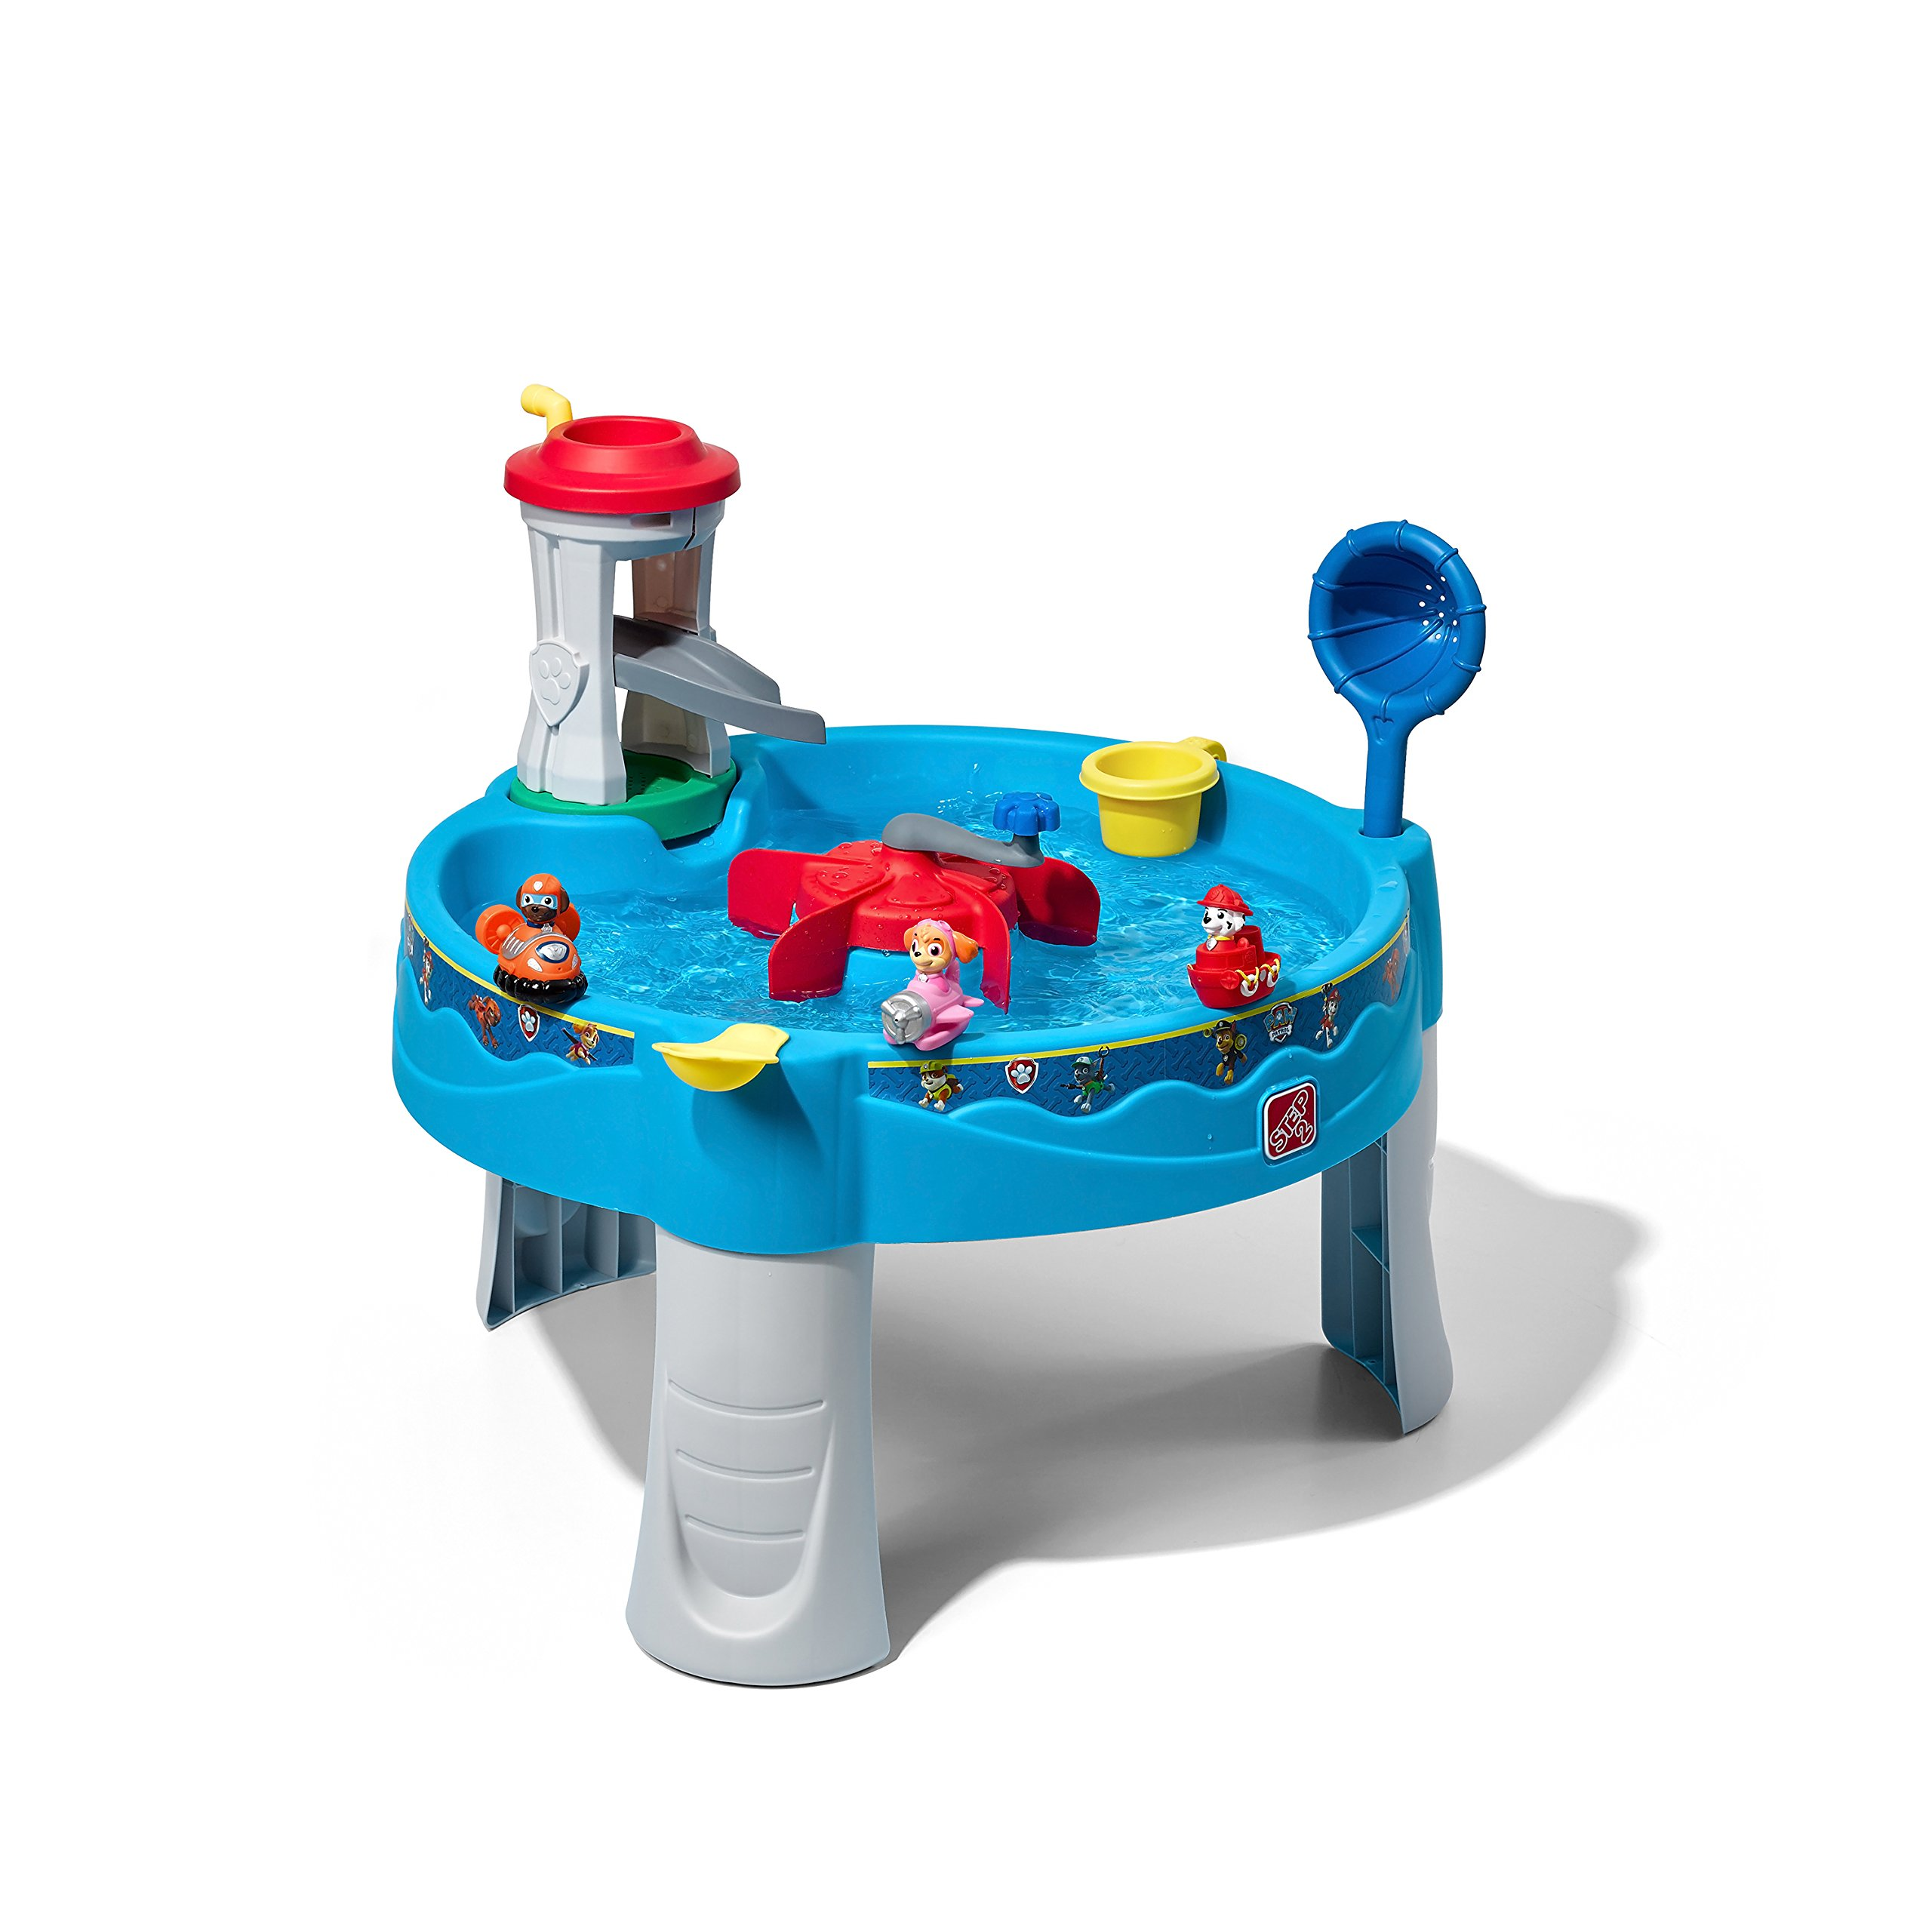 Paw Patrol Water Table with Accessory Set & 3 Characters by Step2